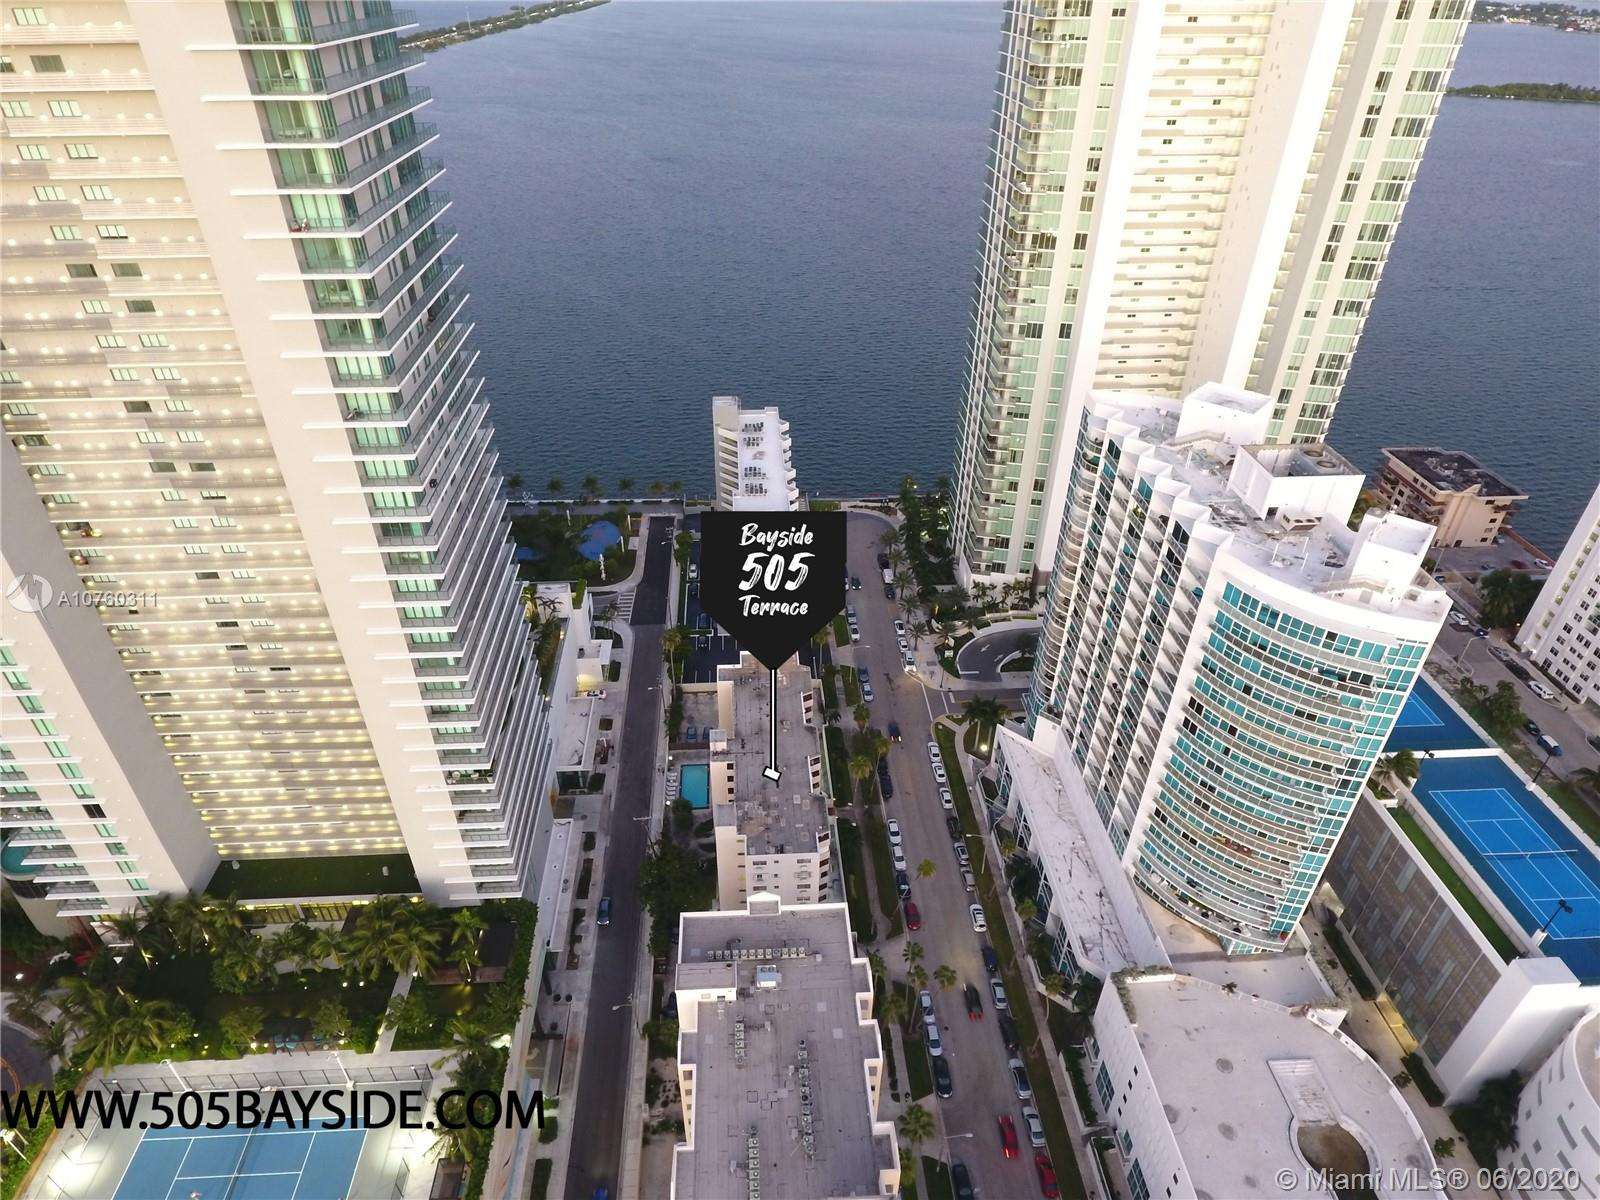 505 NE 30 st, Miami, Florida 33137